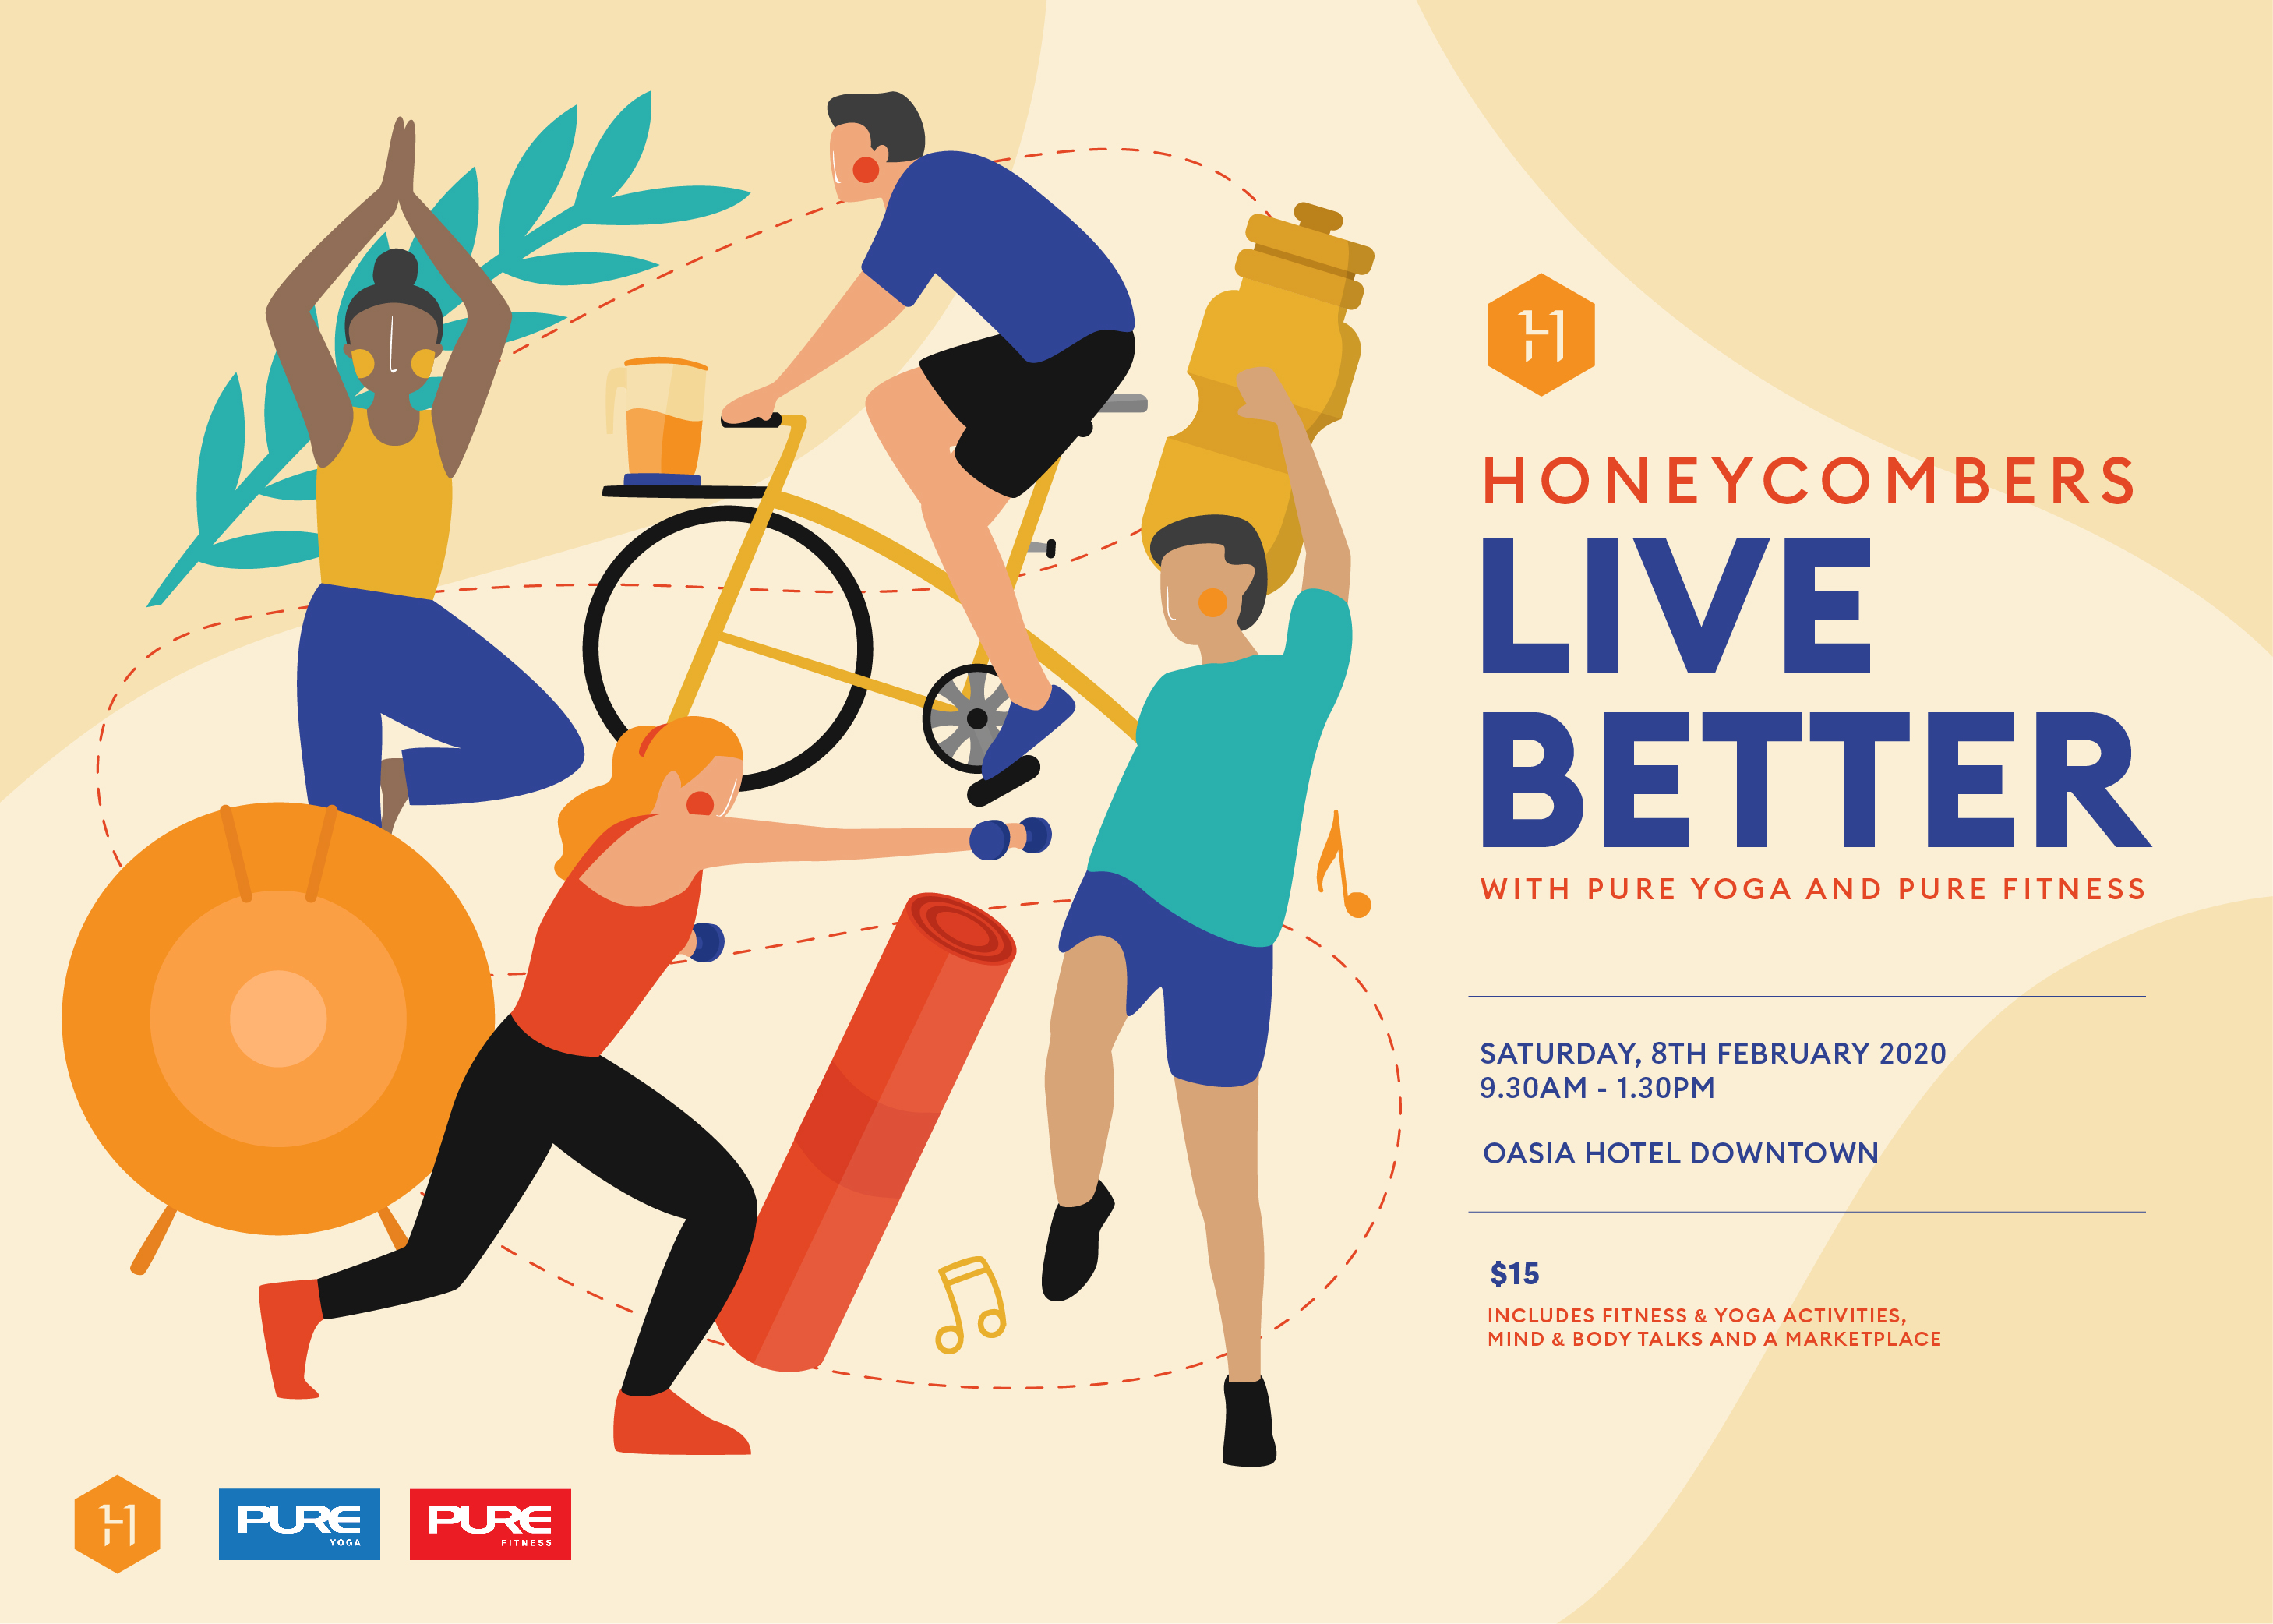 Live Better: Wellness sessions, rejuvenating workouts, mindful talks and more with Pure Yoga and Pure Fitness